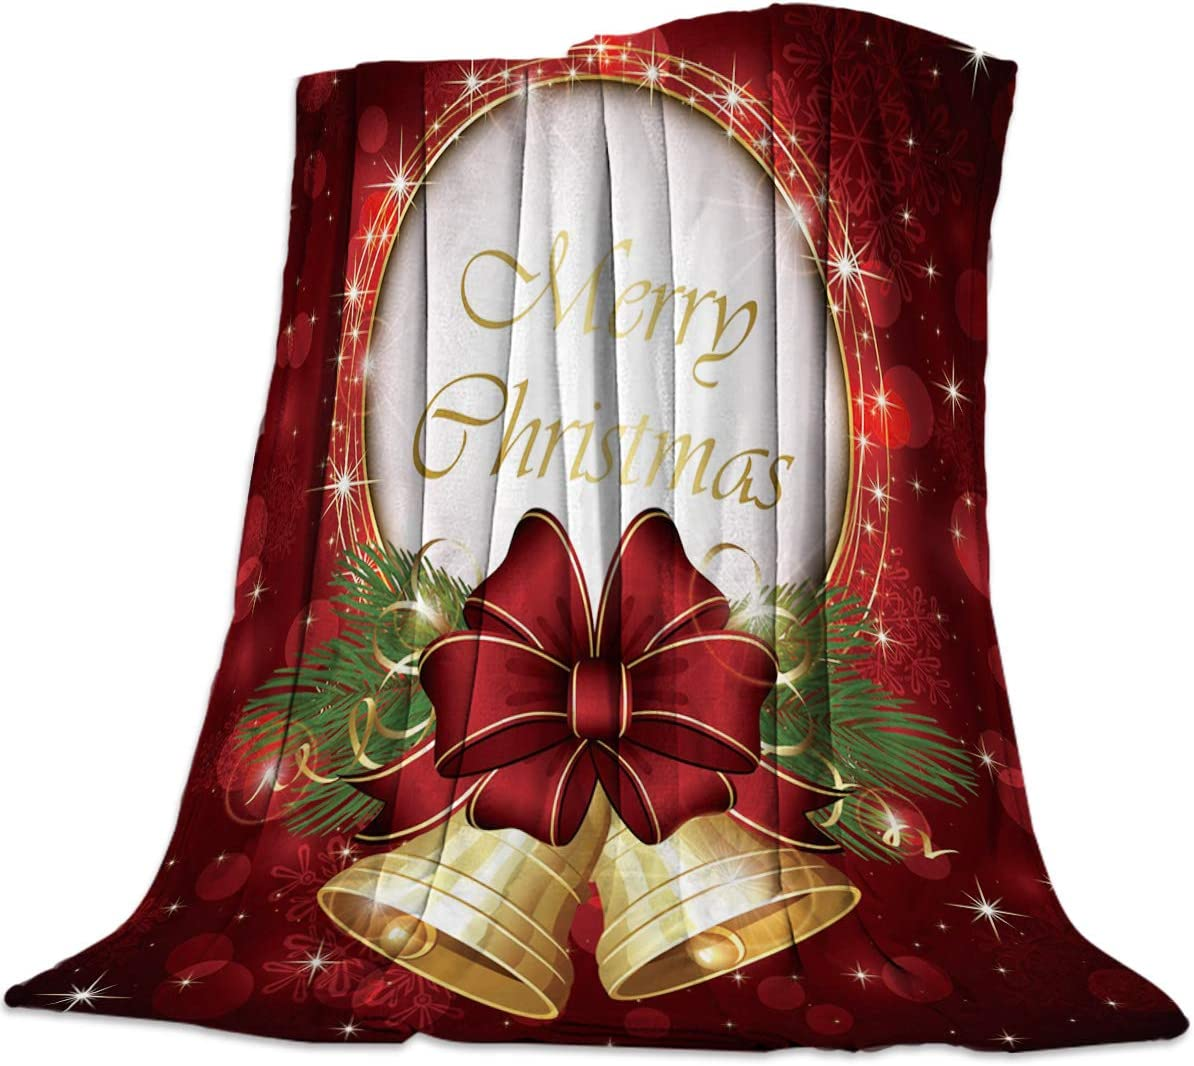 Rare HIYPLAY Christmas Bell Flannel Fleece Blanket Now free shipping b Red 50